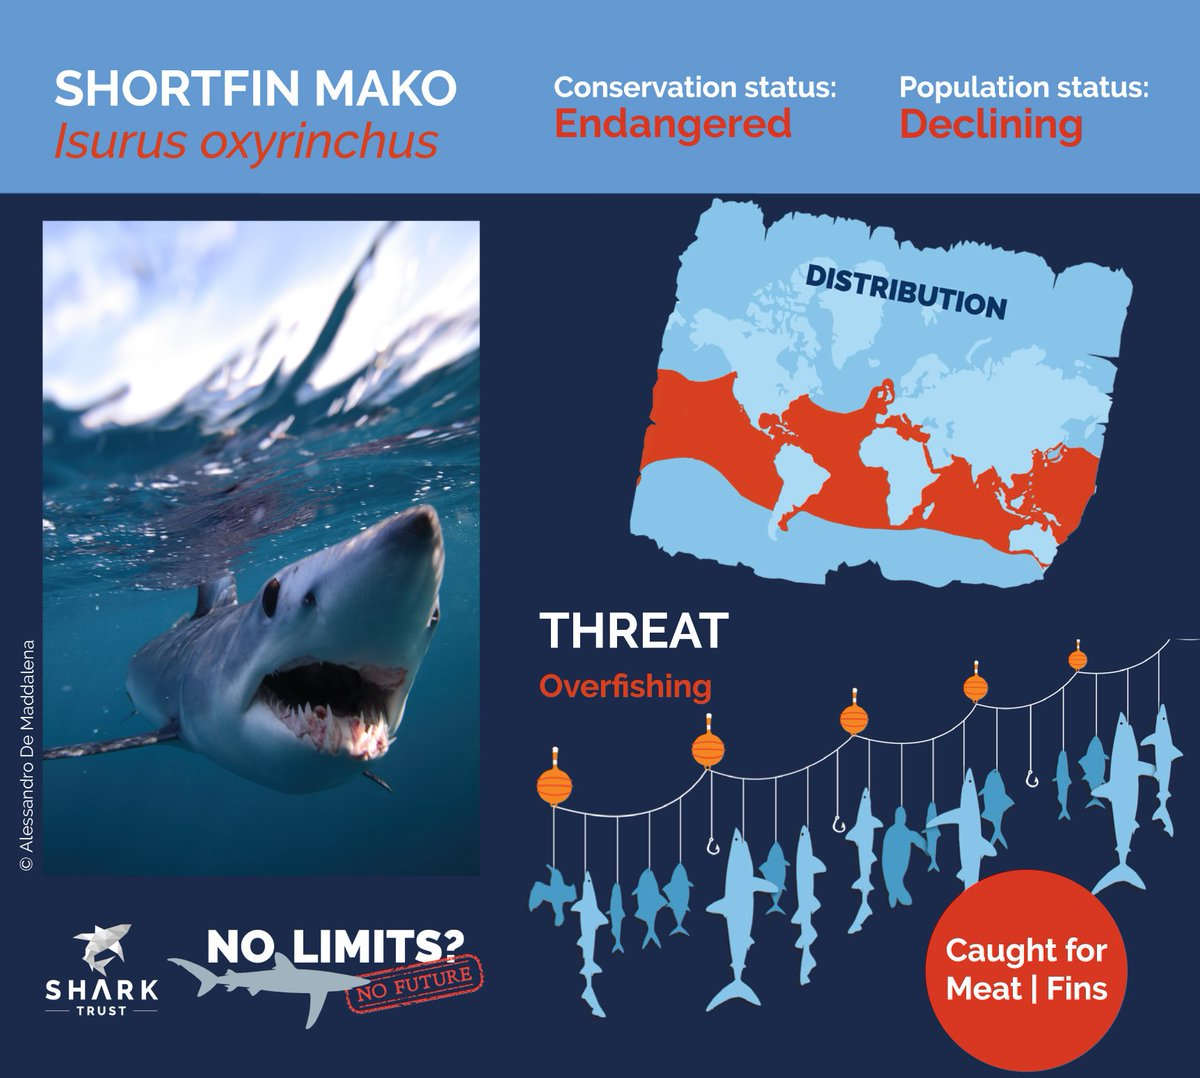 Australia must remove Mako reservations, and @CITES must list this Endangered species.  #EndangeredSpeciesDay #NoLimitsNoFuture #biodiversity